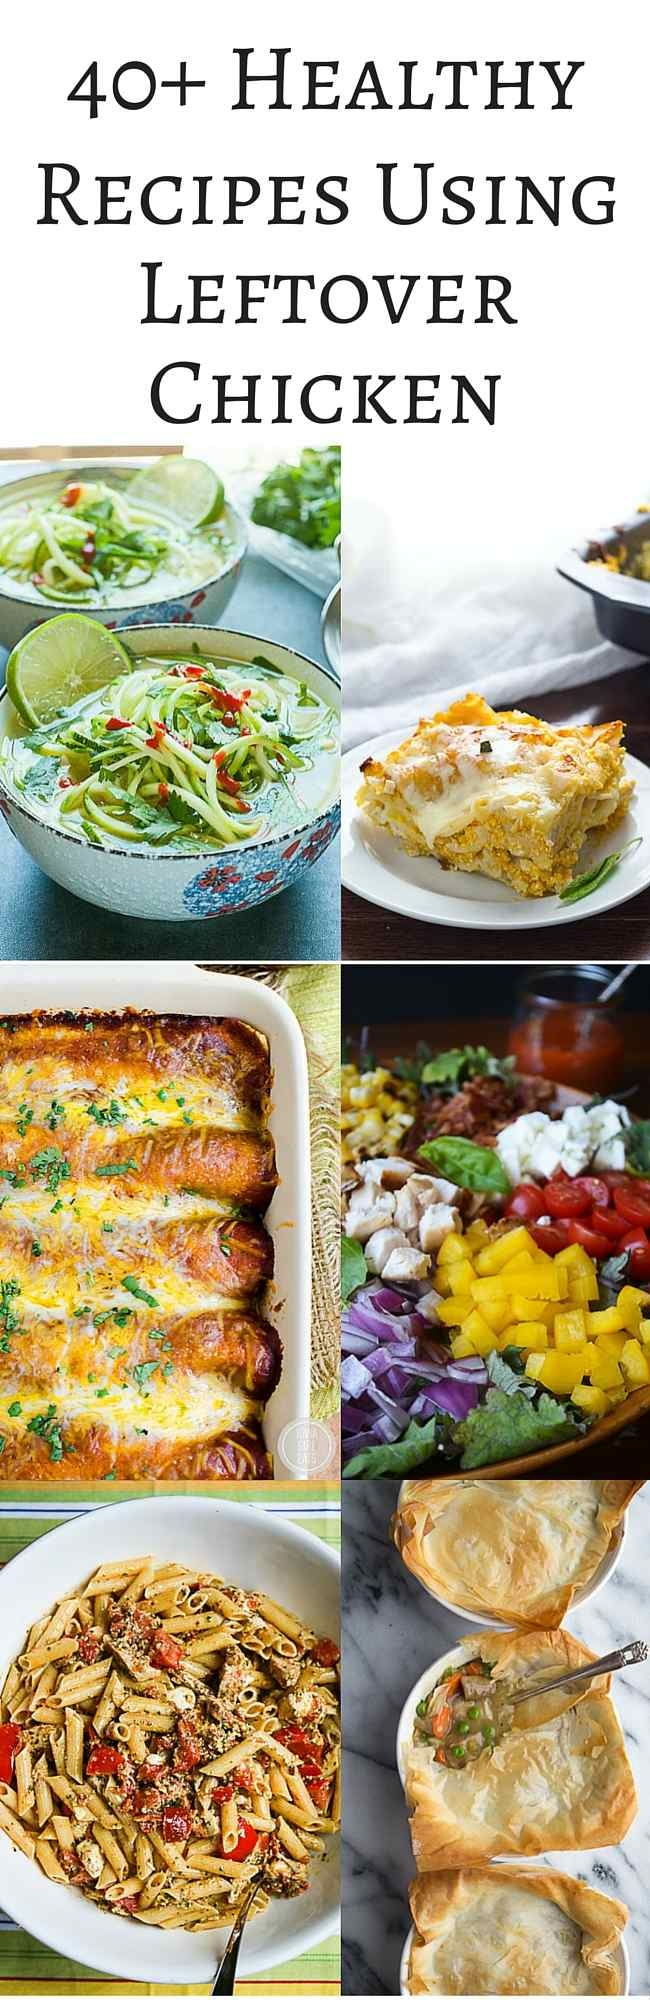 Healthy Recipes Using Leftover Chicken